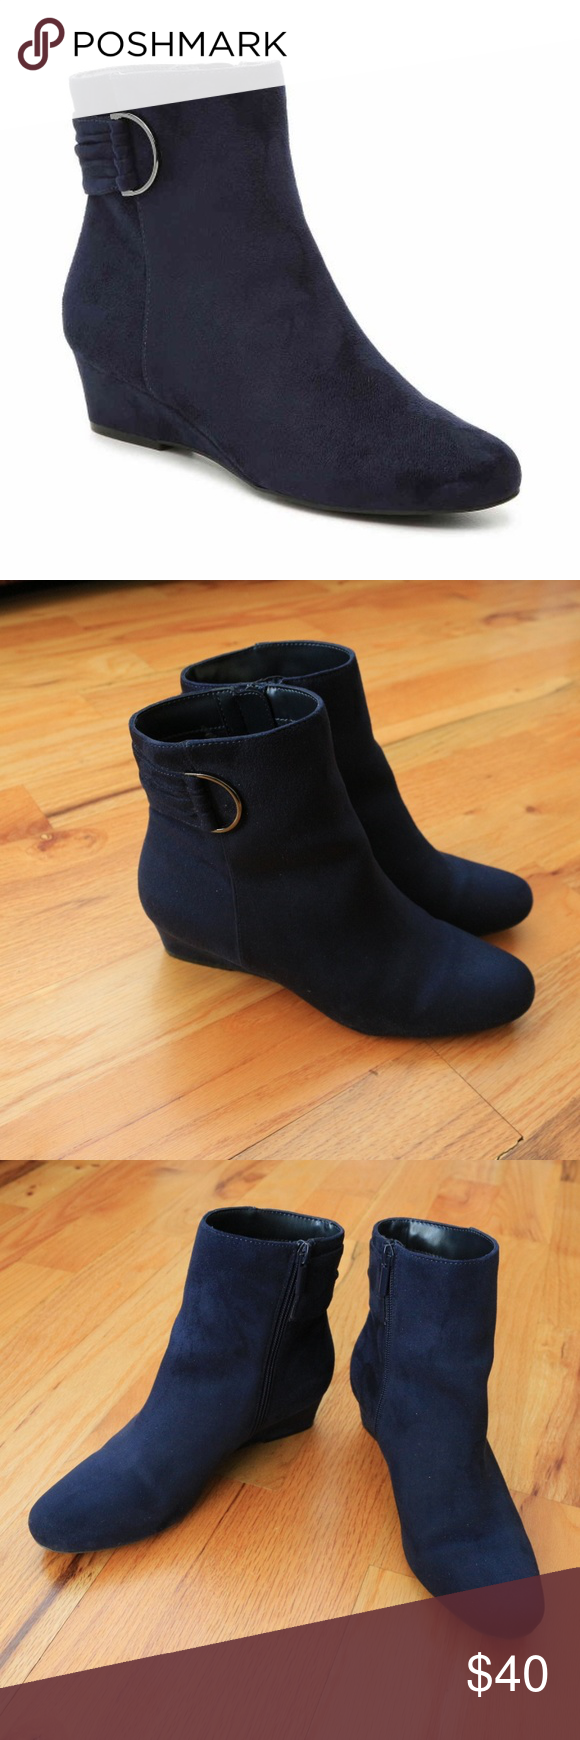 e90e08176a5 IMPO GAVYN WEDGE BOOTIE Navy Blue Suede Like new